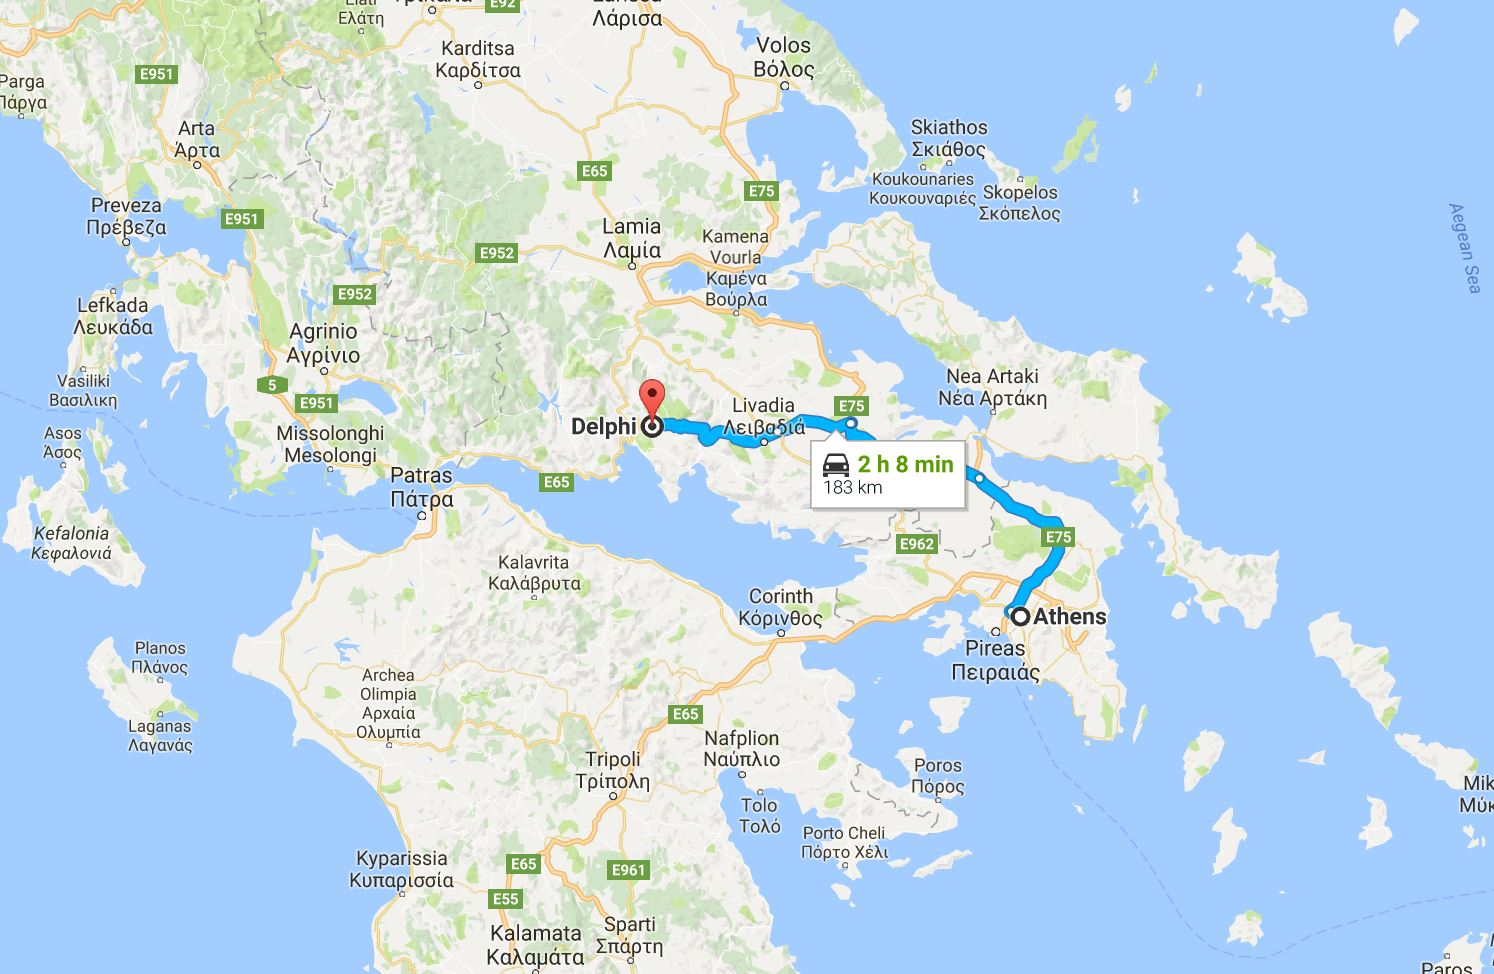 Day Trip from Athens To Delphi - Distance